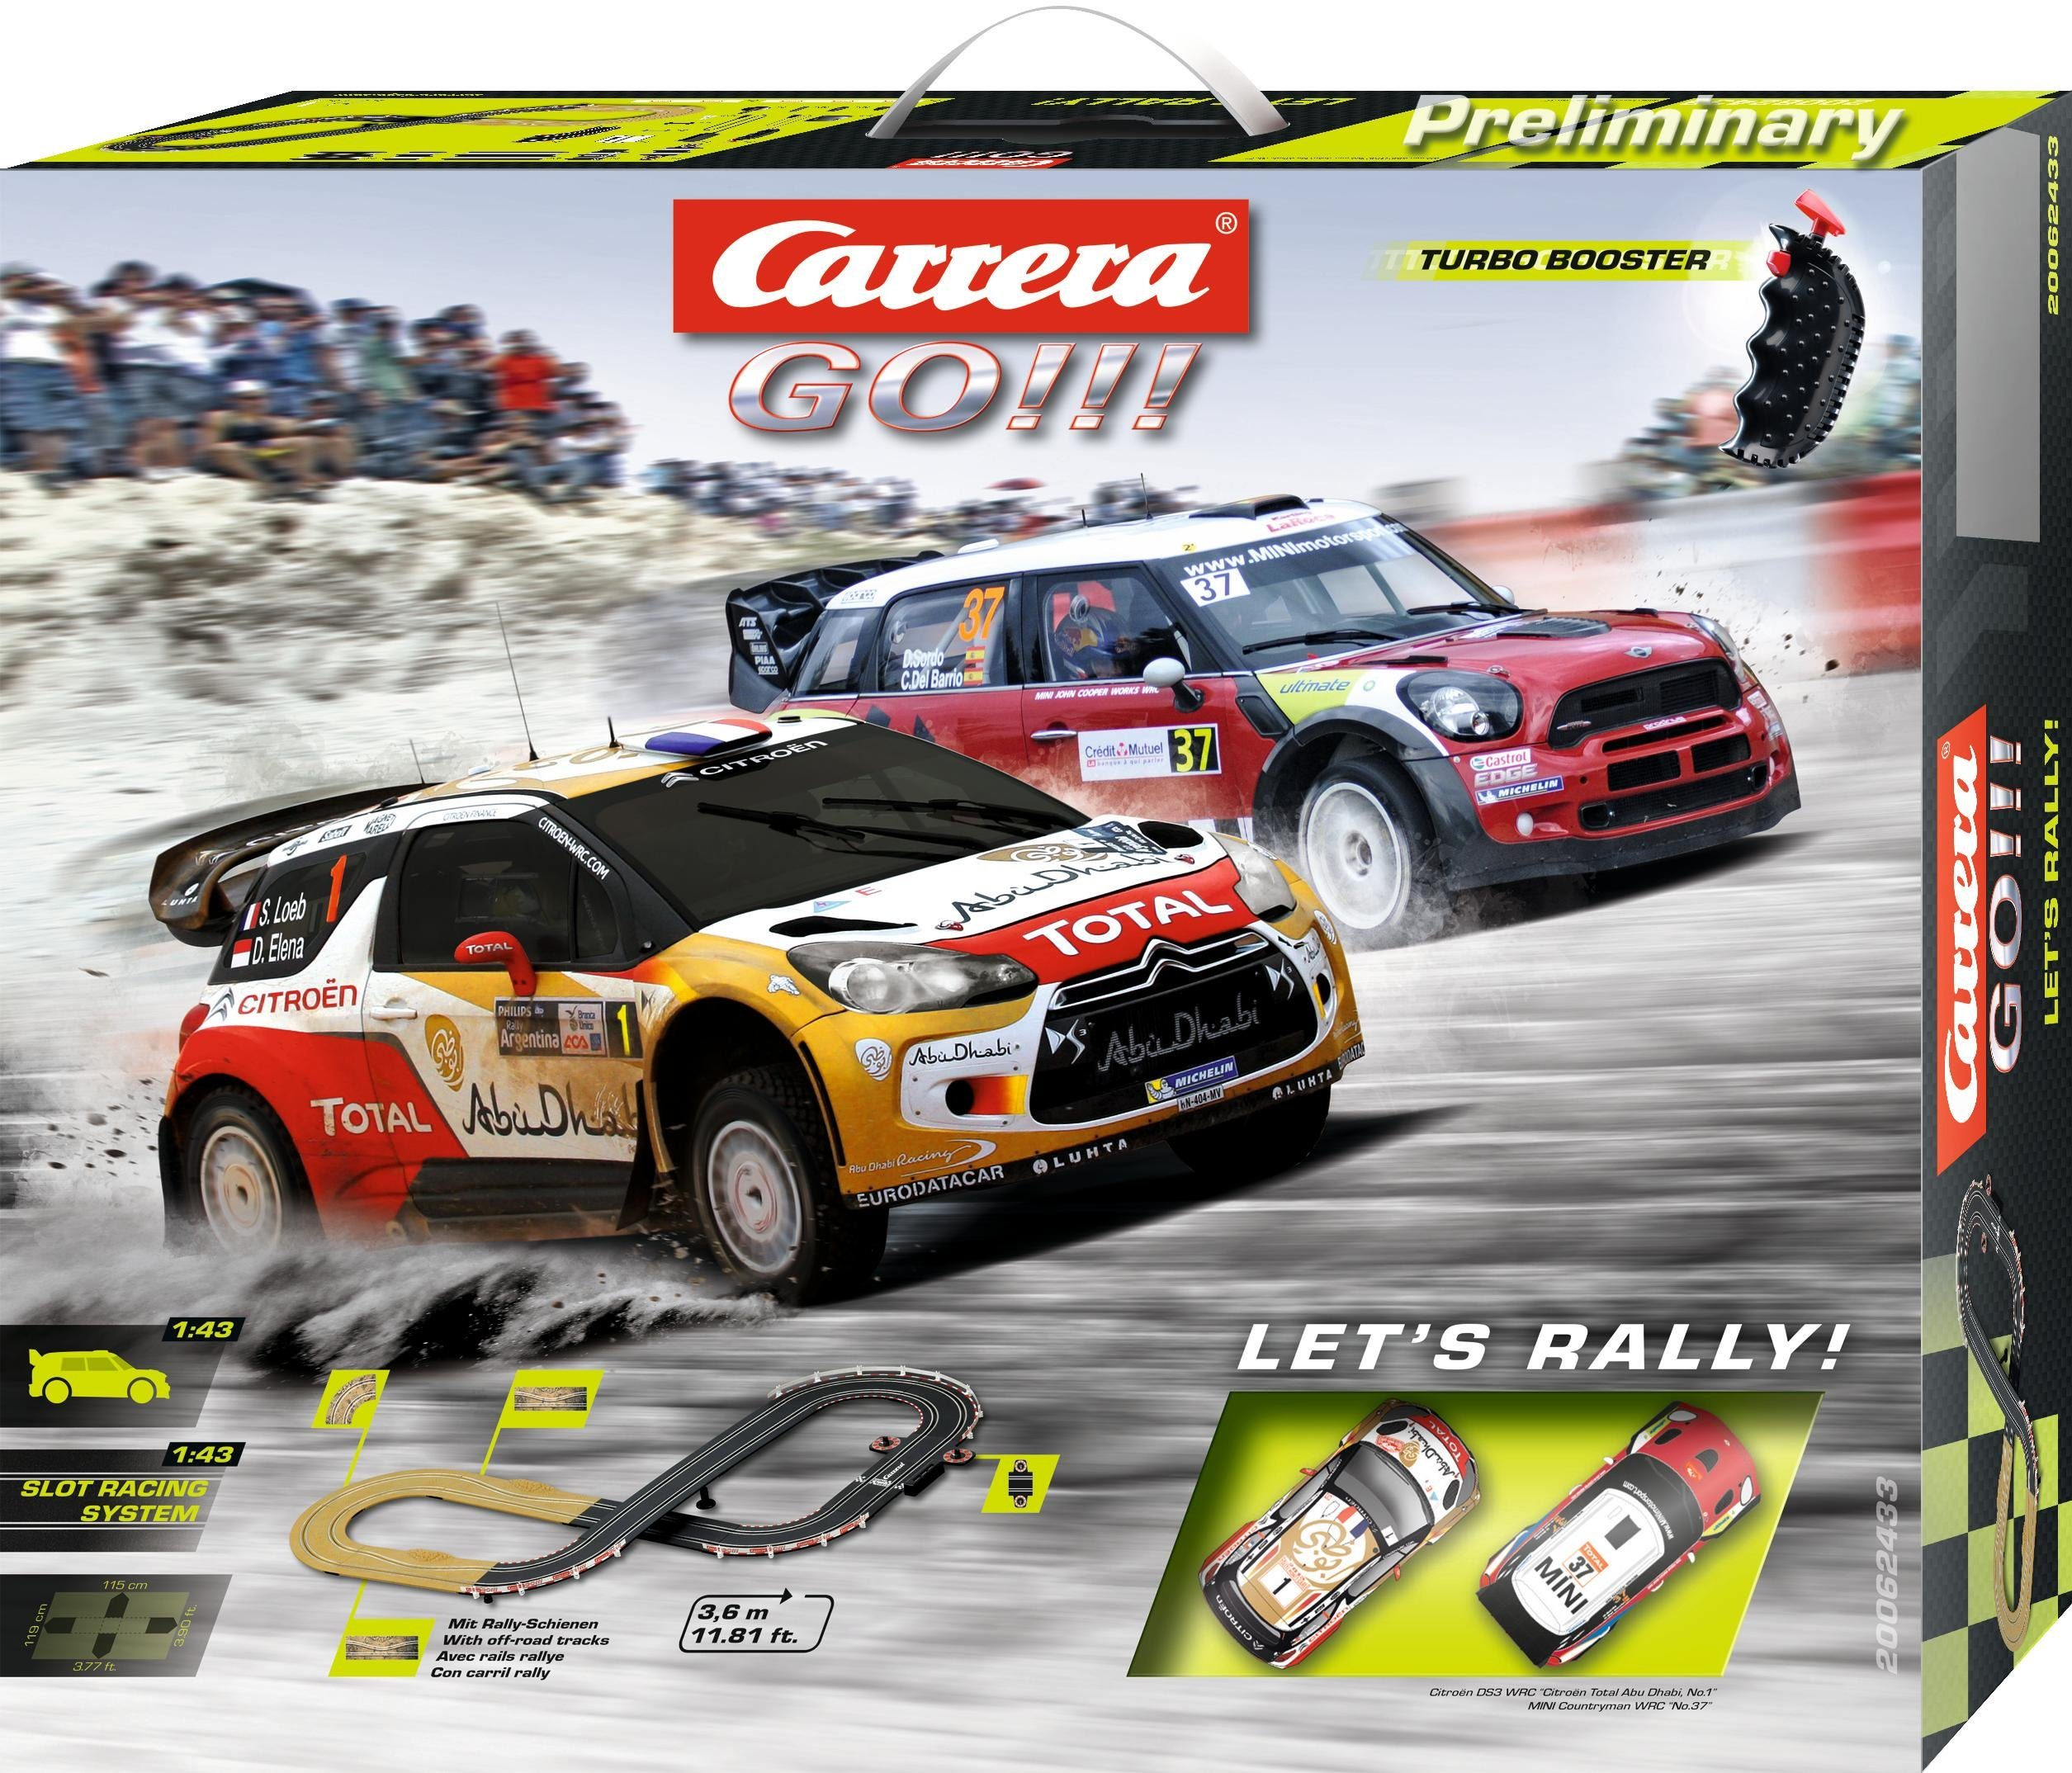 Carrera Autorennbahn, »Carrera® GO!!! Let's Rally!«